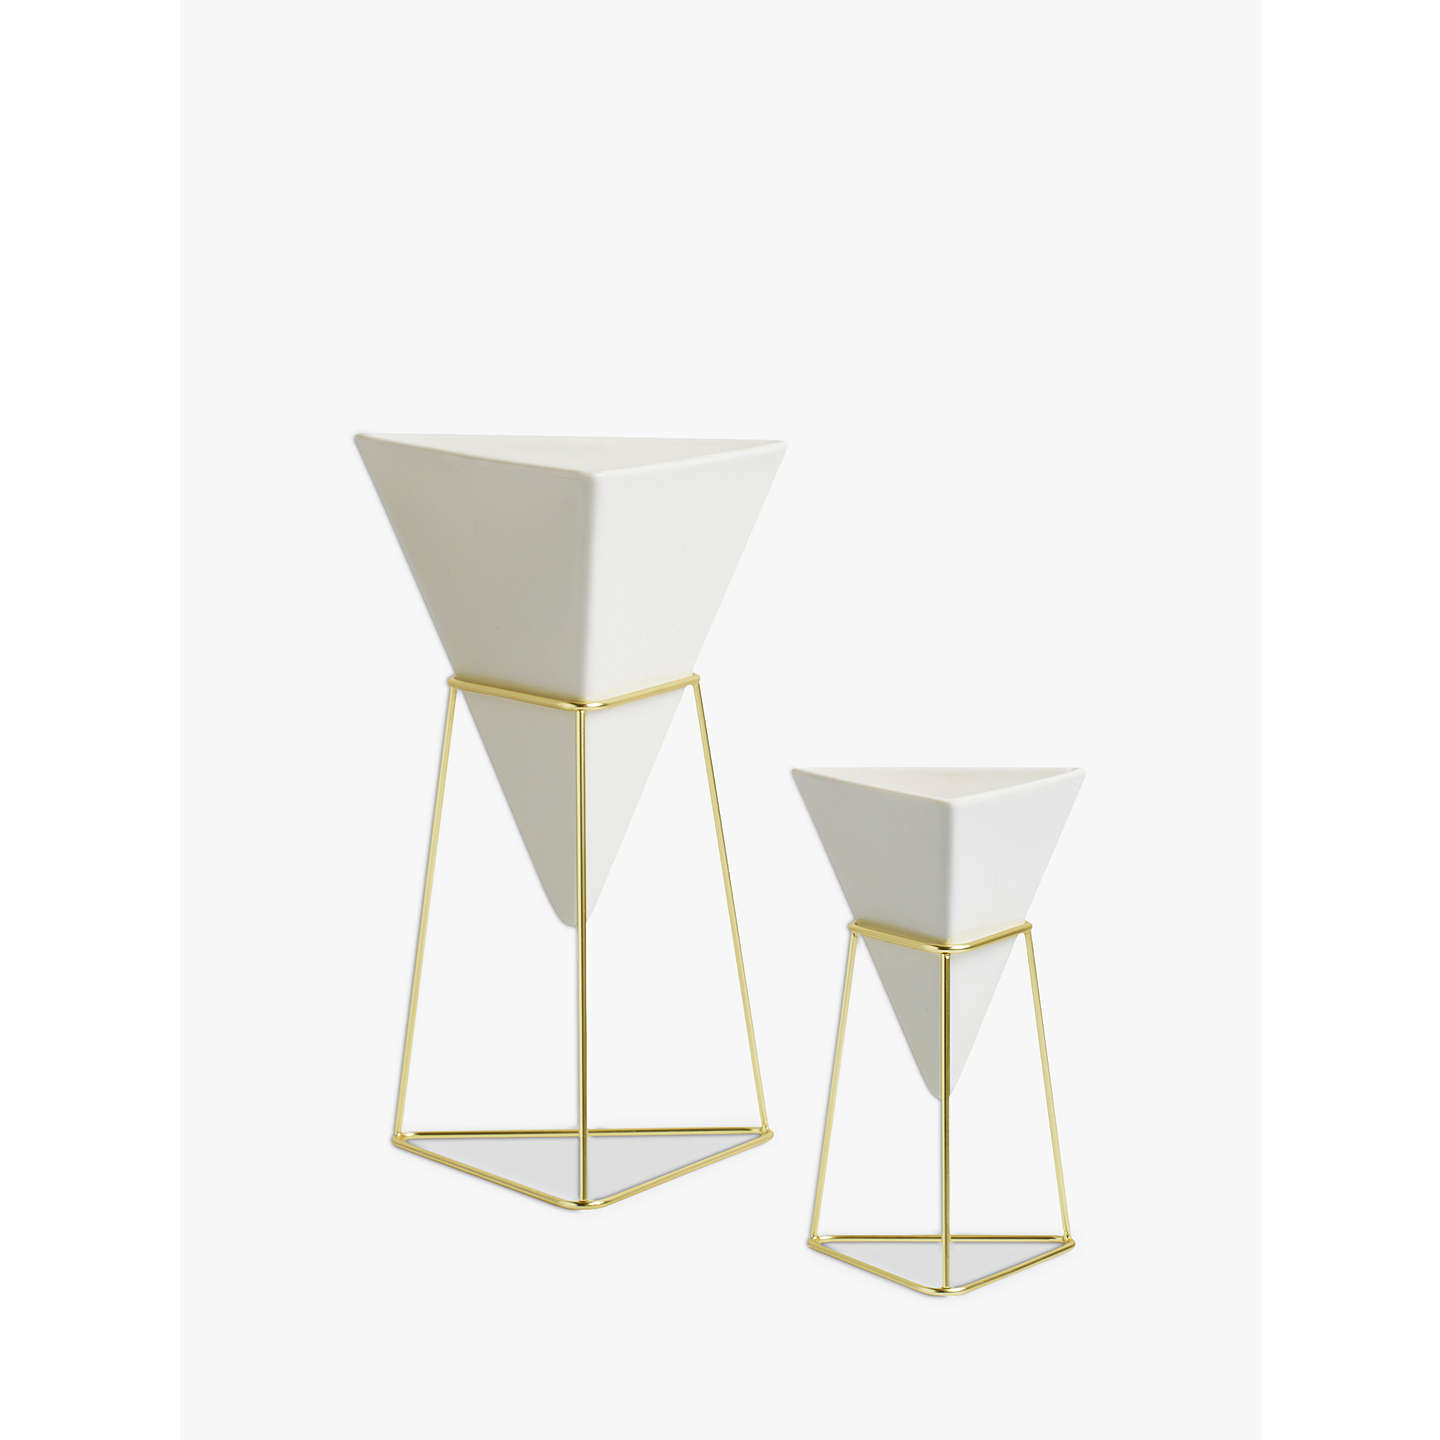 BuyUmbra Trigg Freestanding Vase, White, Set of 2 Online at johnlewis.com